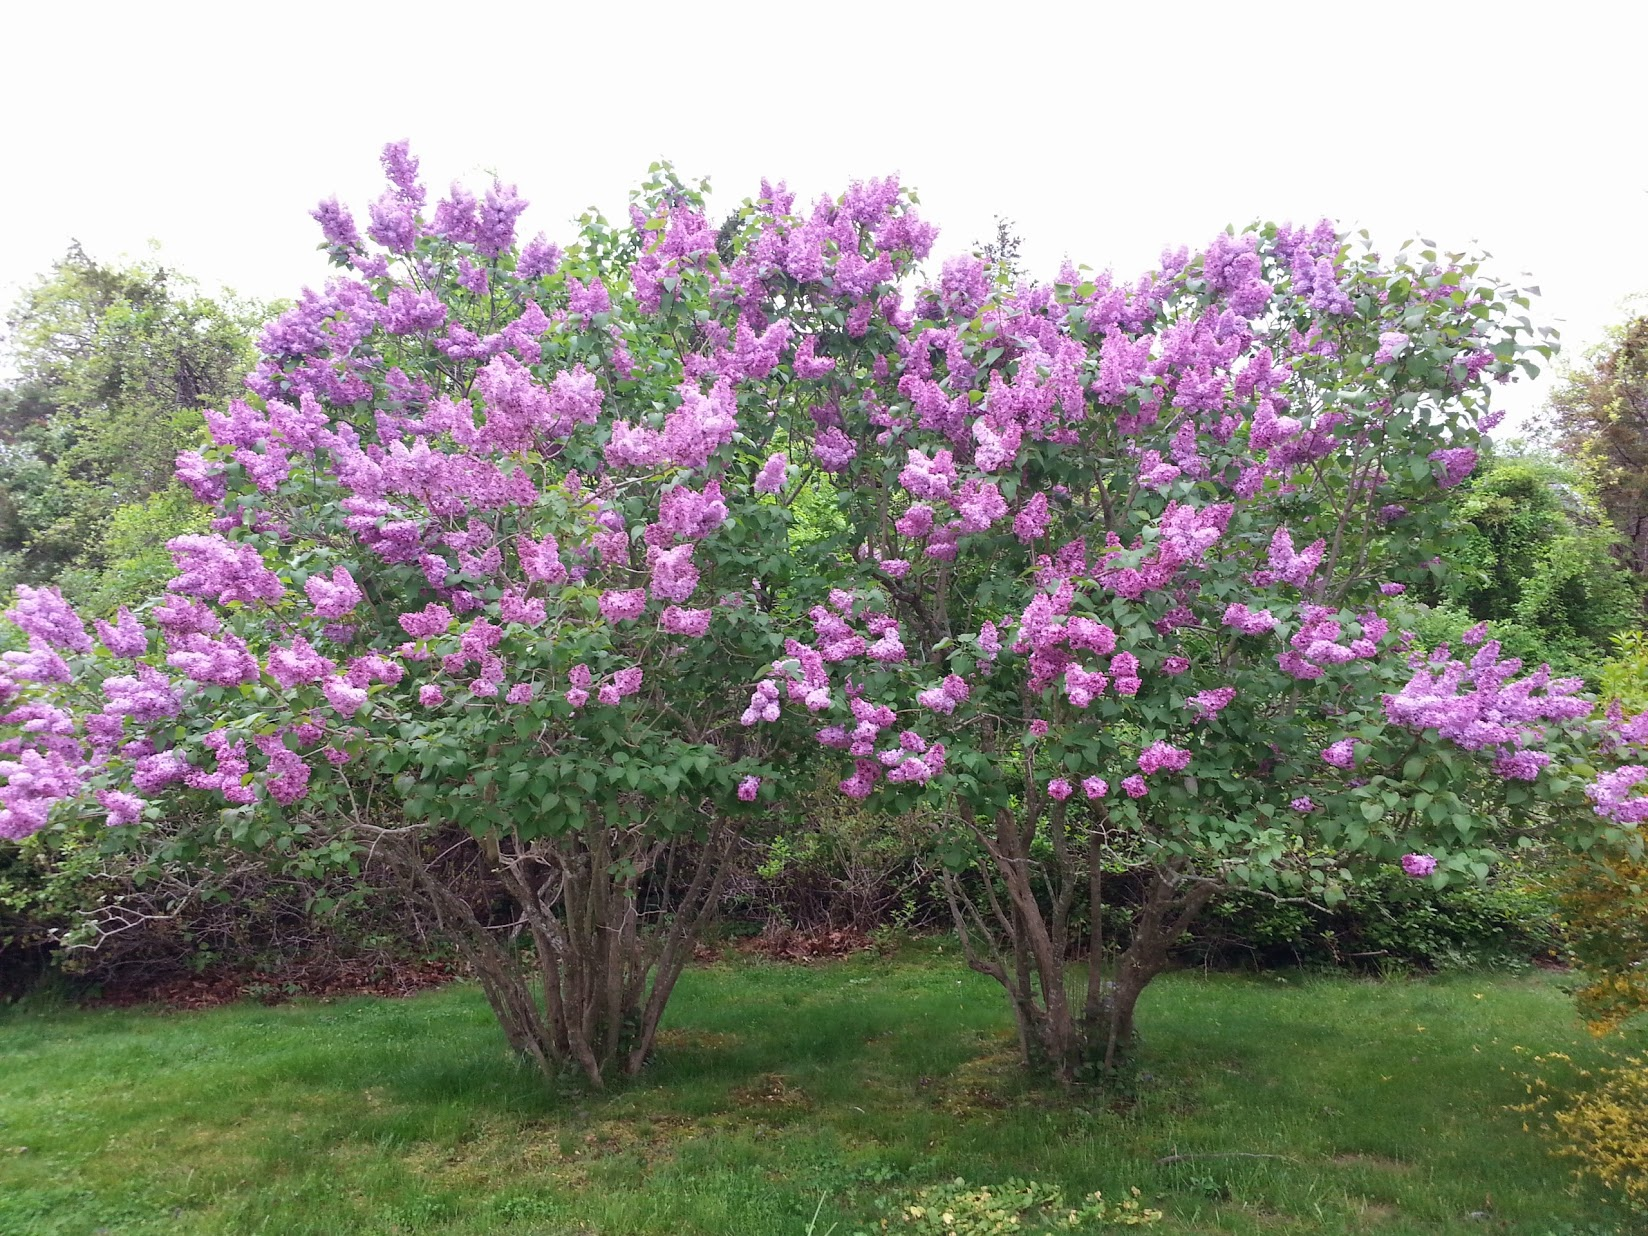 Lilacs in full bloom, Shelter Island, NY